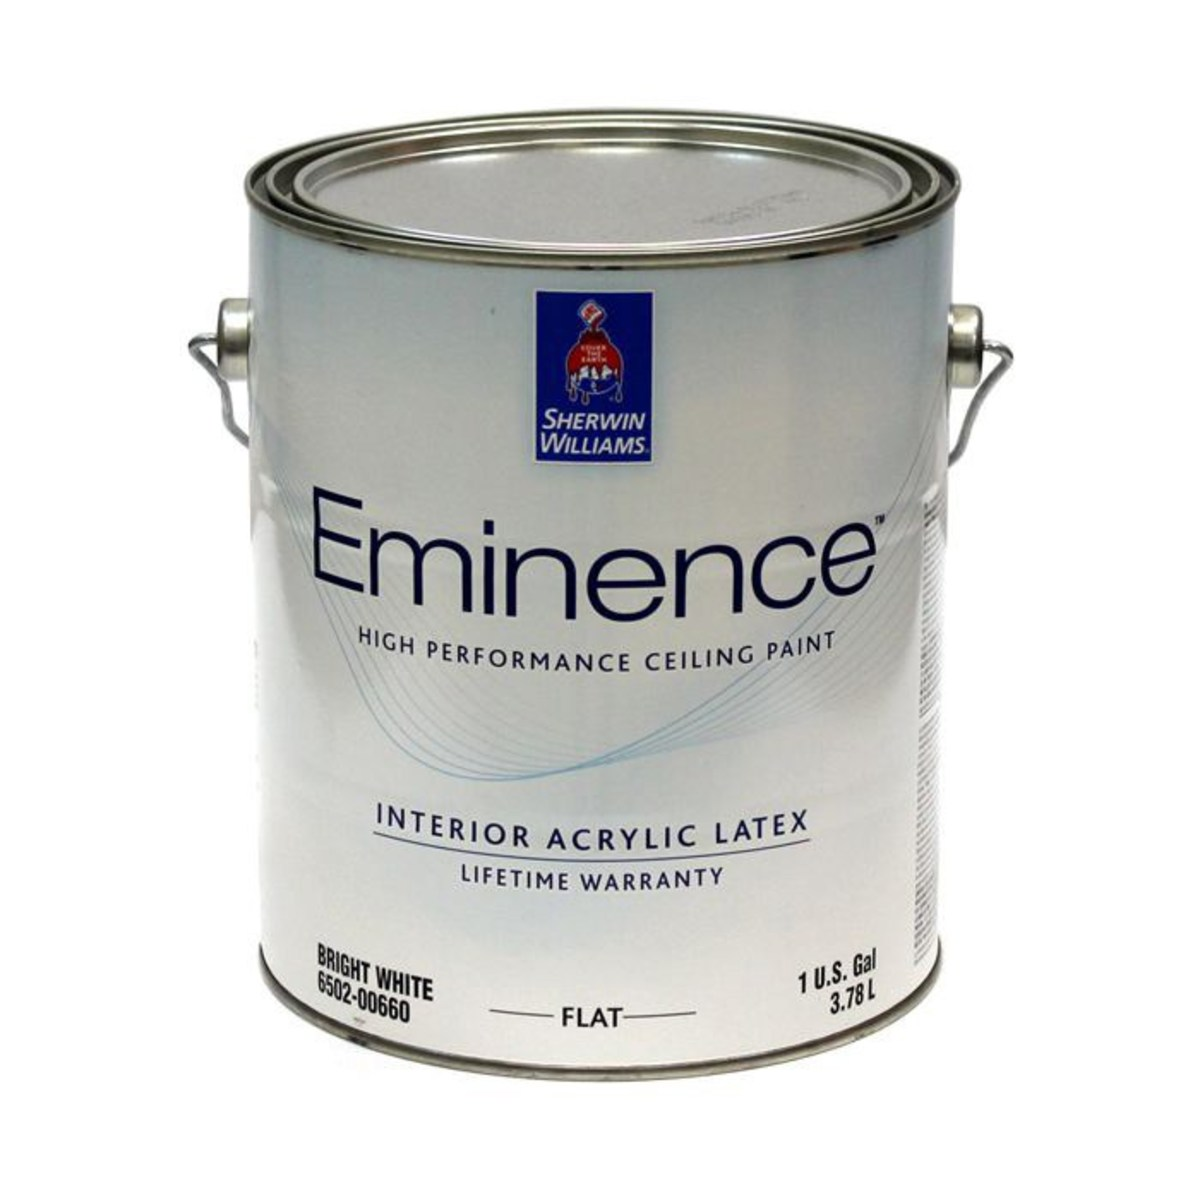 Sherwin Williams Eminence Ceiling Paint Review